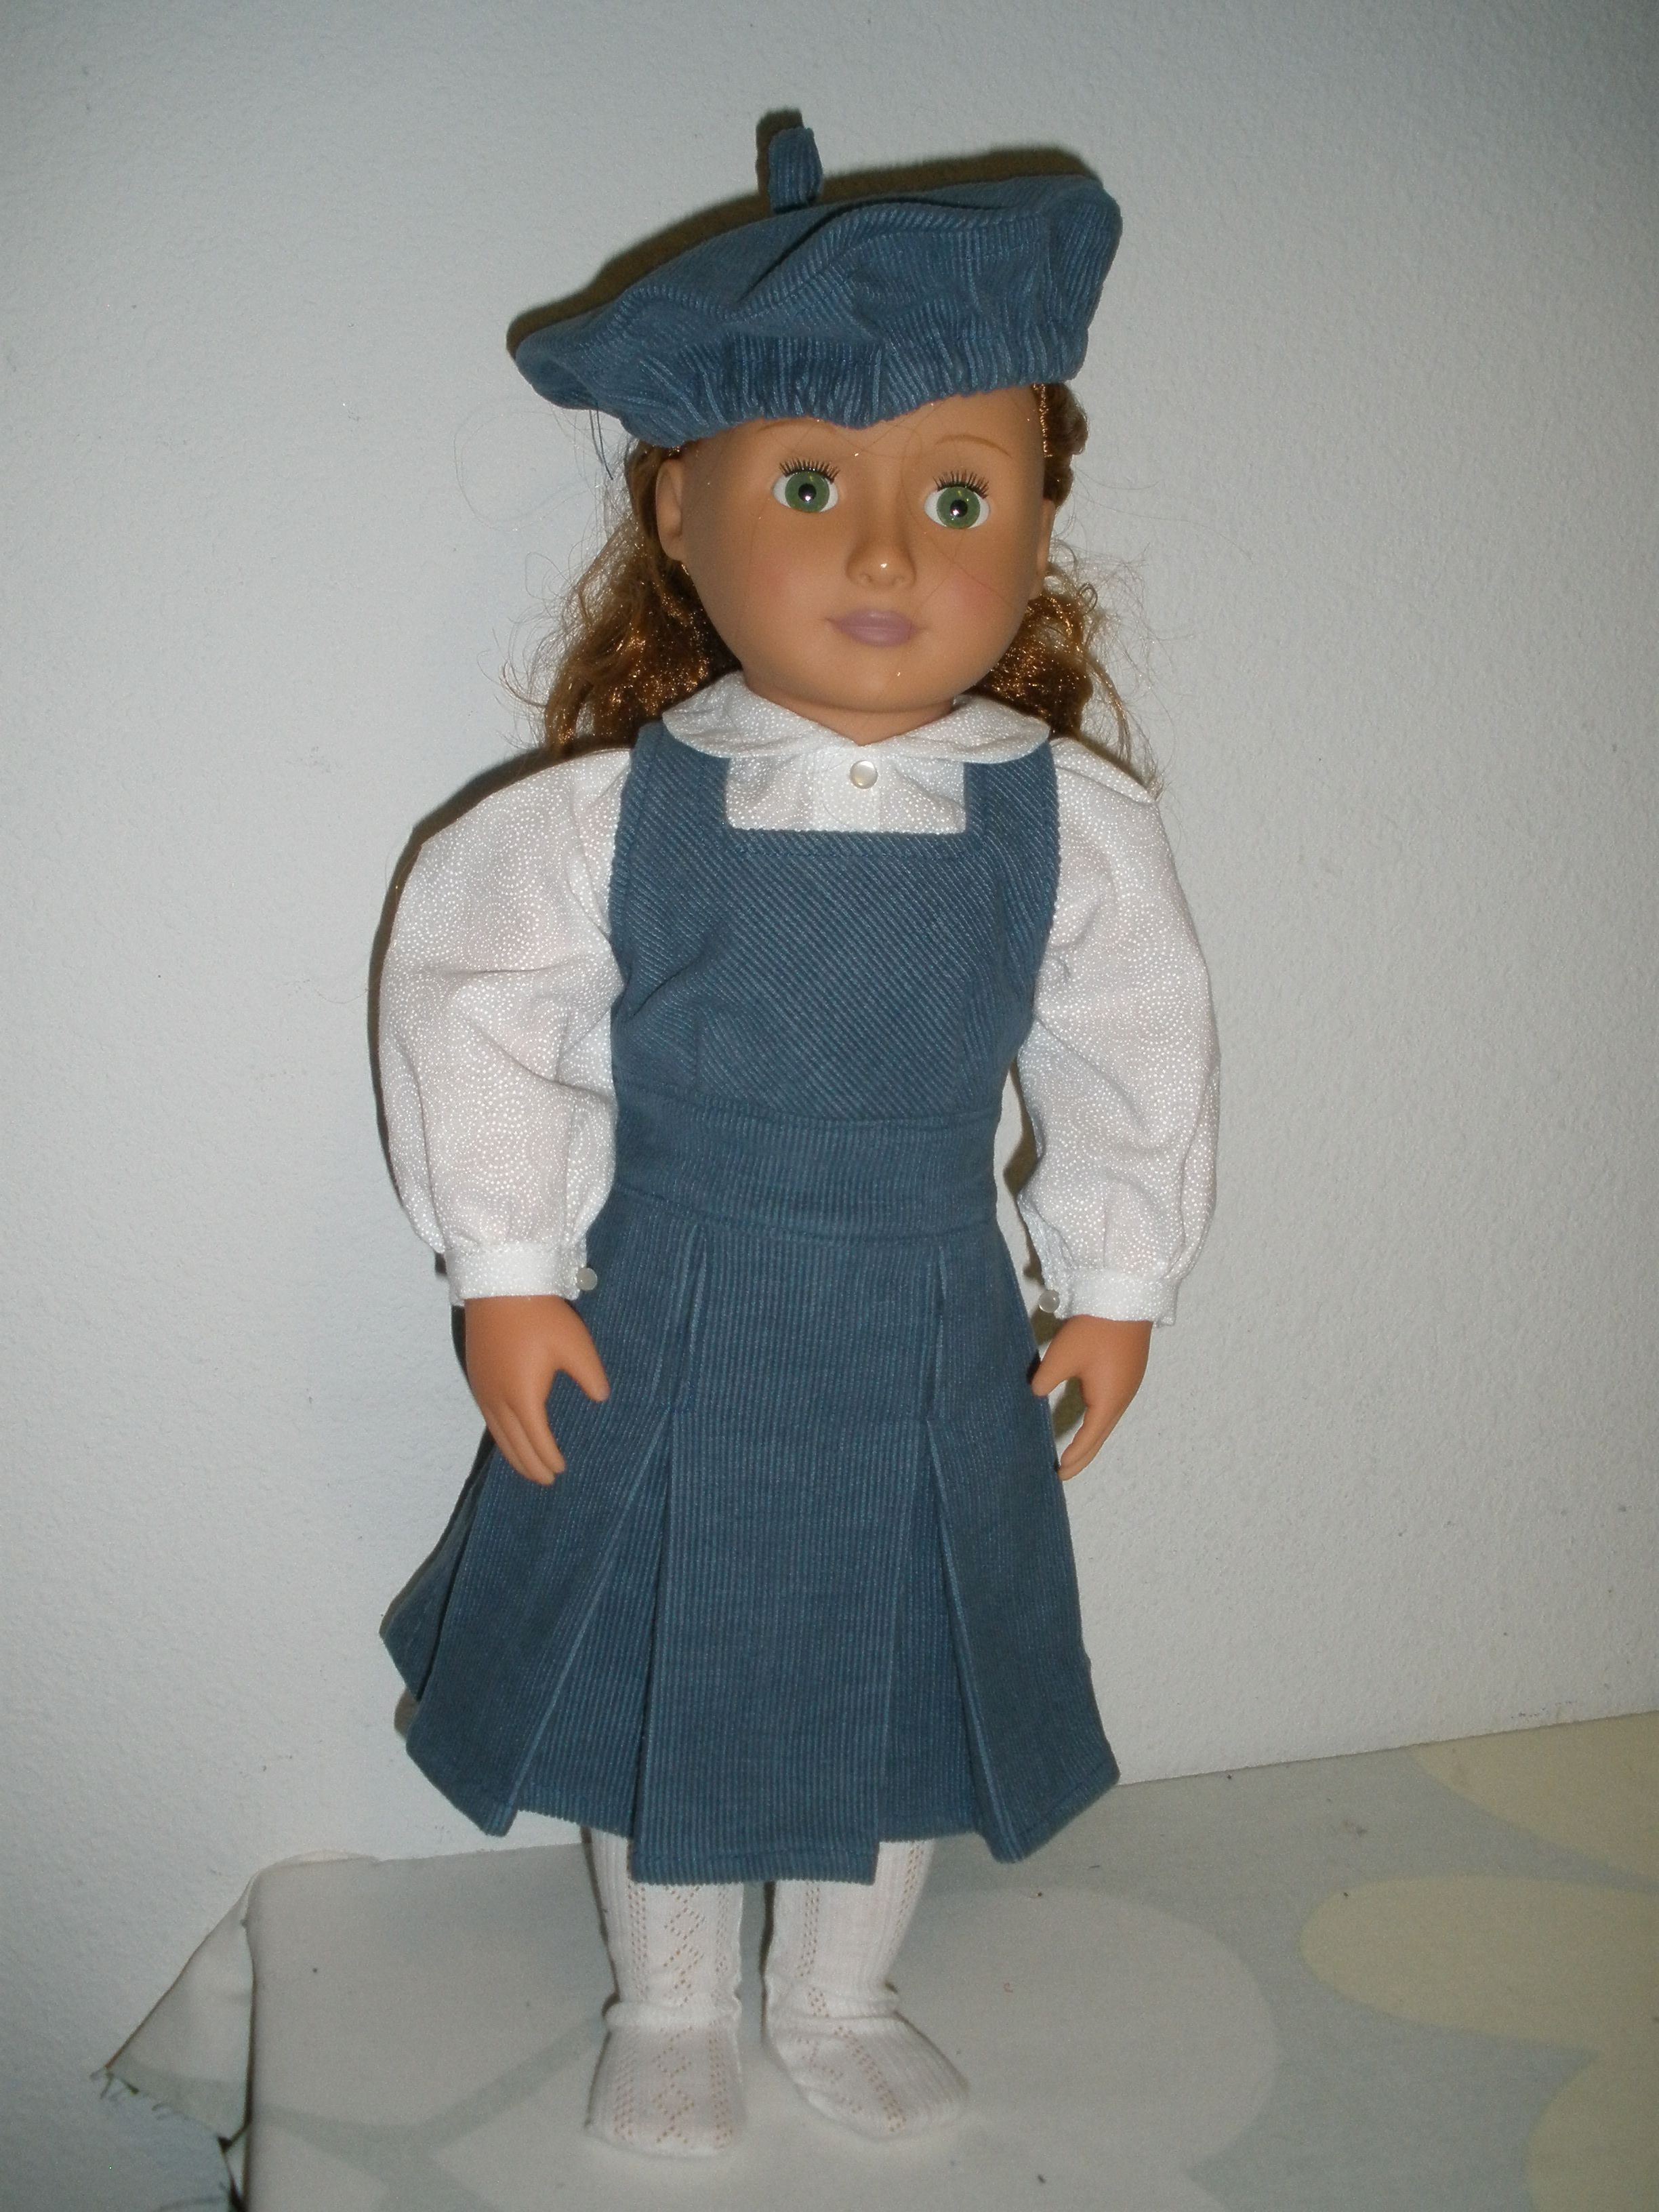 Blue corduroy jump suit outfit. Velcro openings, tam, blouse, dress.